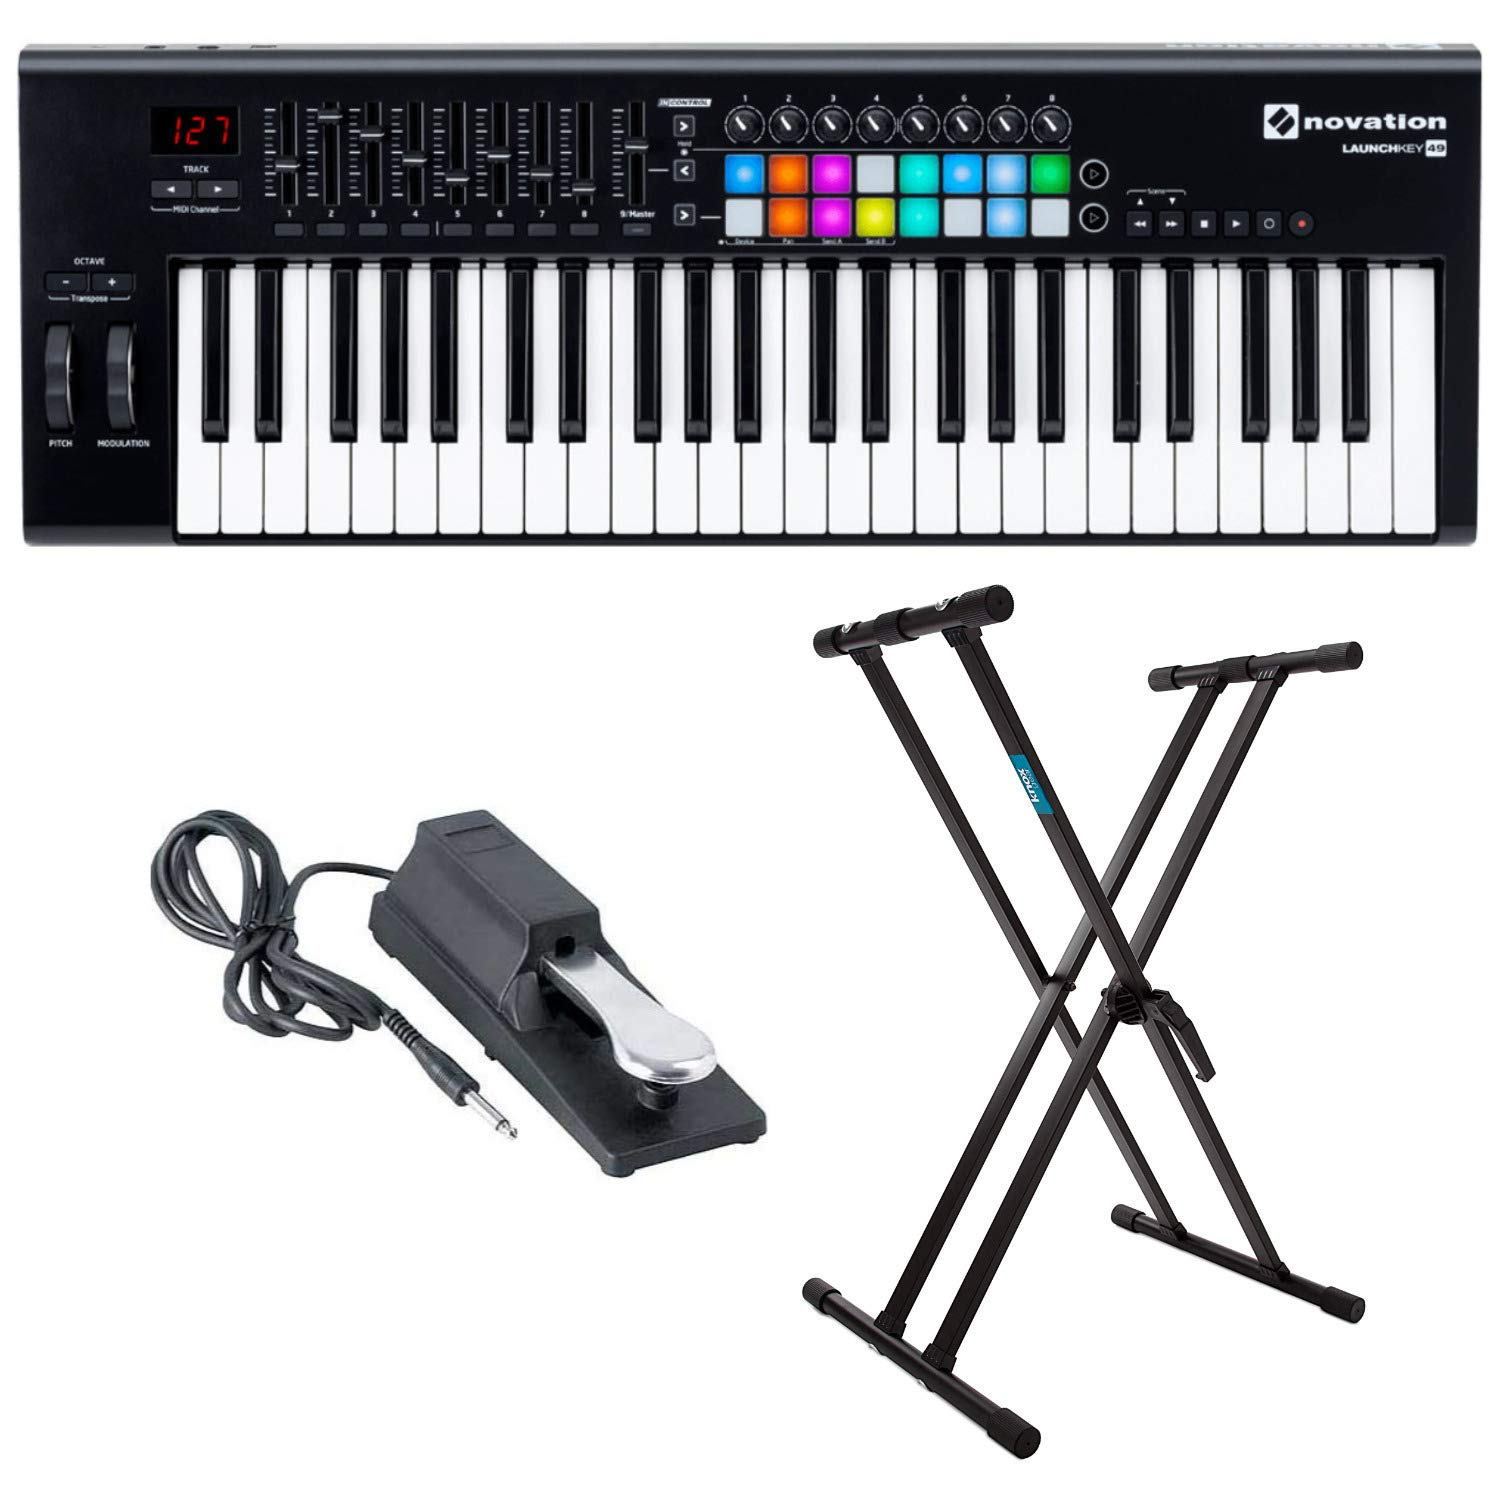 Novation Launchkey 49 MK2 Keyboard Controller with Knox Keyboard Stand and Sustain Pedal by Novation (Image #1)